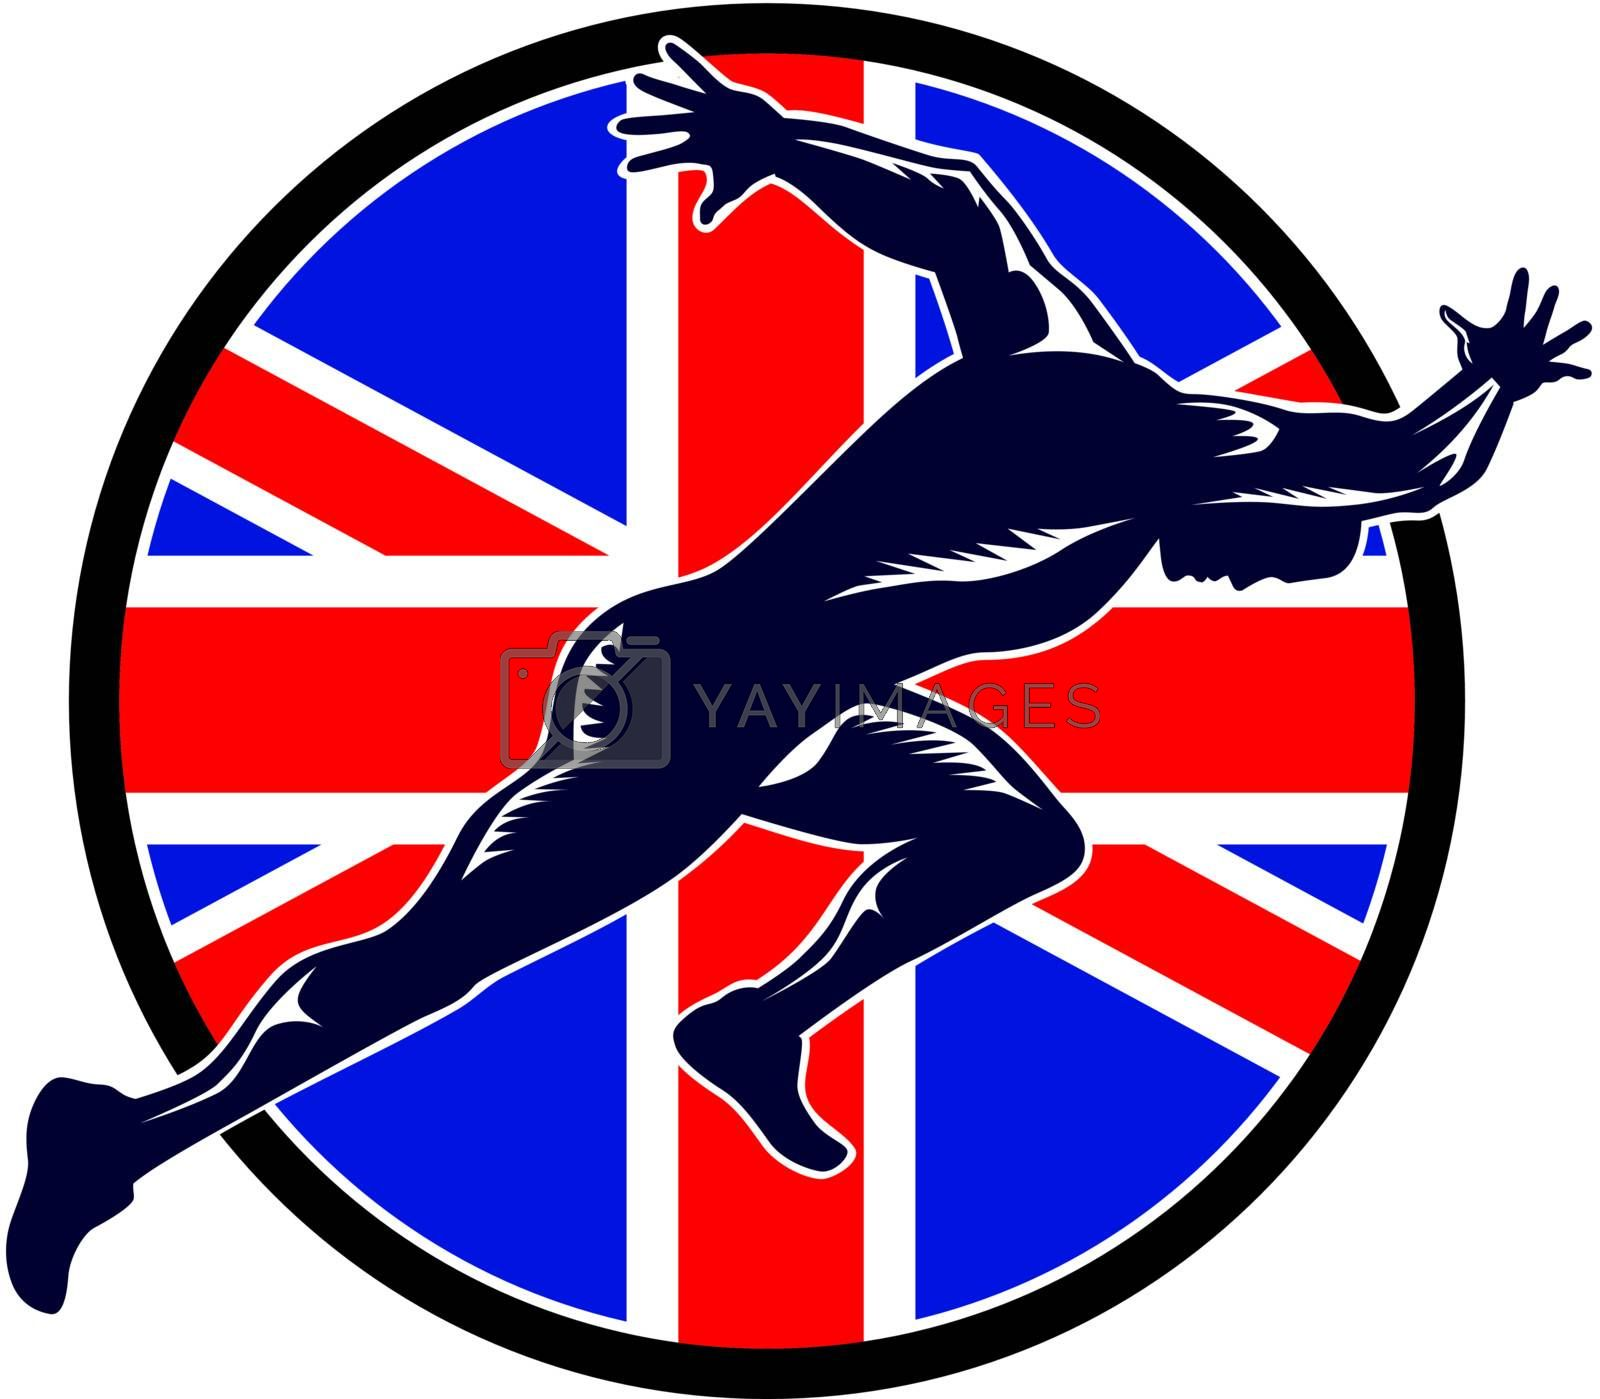 Retro illustration of a runner sprinter running sprinting viewed from side with union jack Great Britain British flag set inside shield on isolated white background.